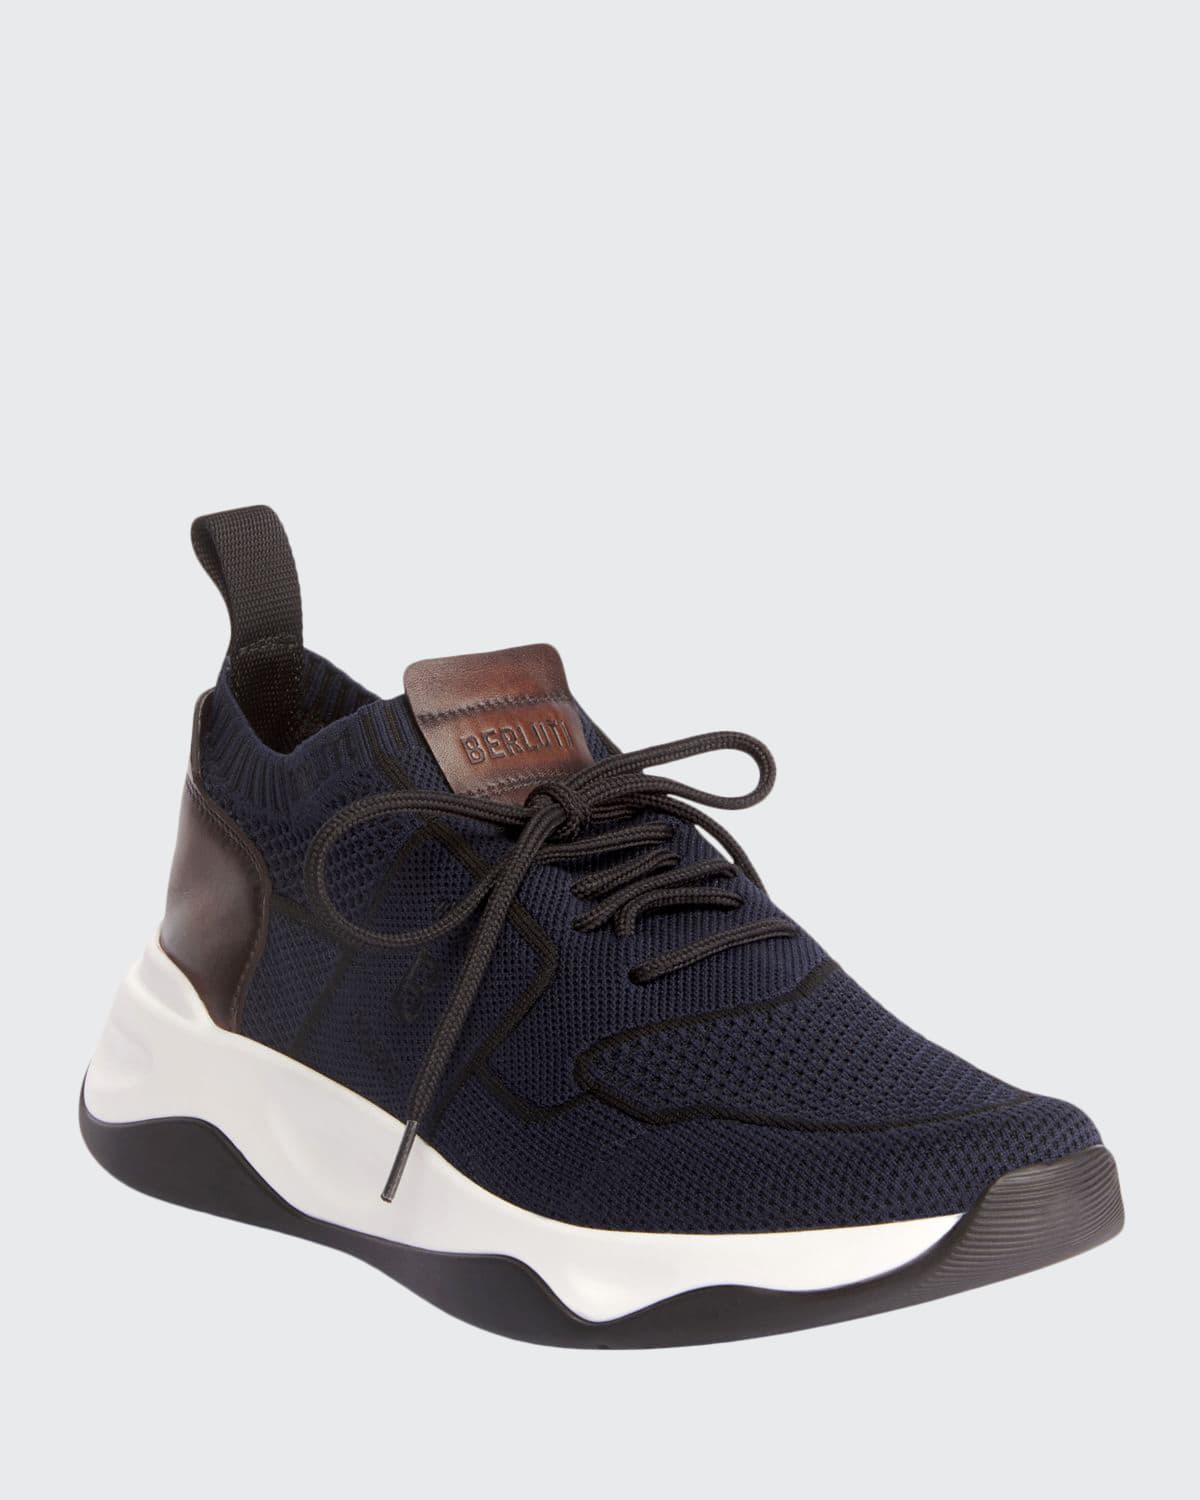 Men's Shadow Knit Sneaker with Leather Details